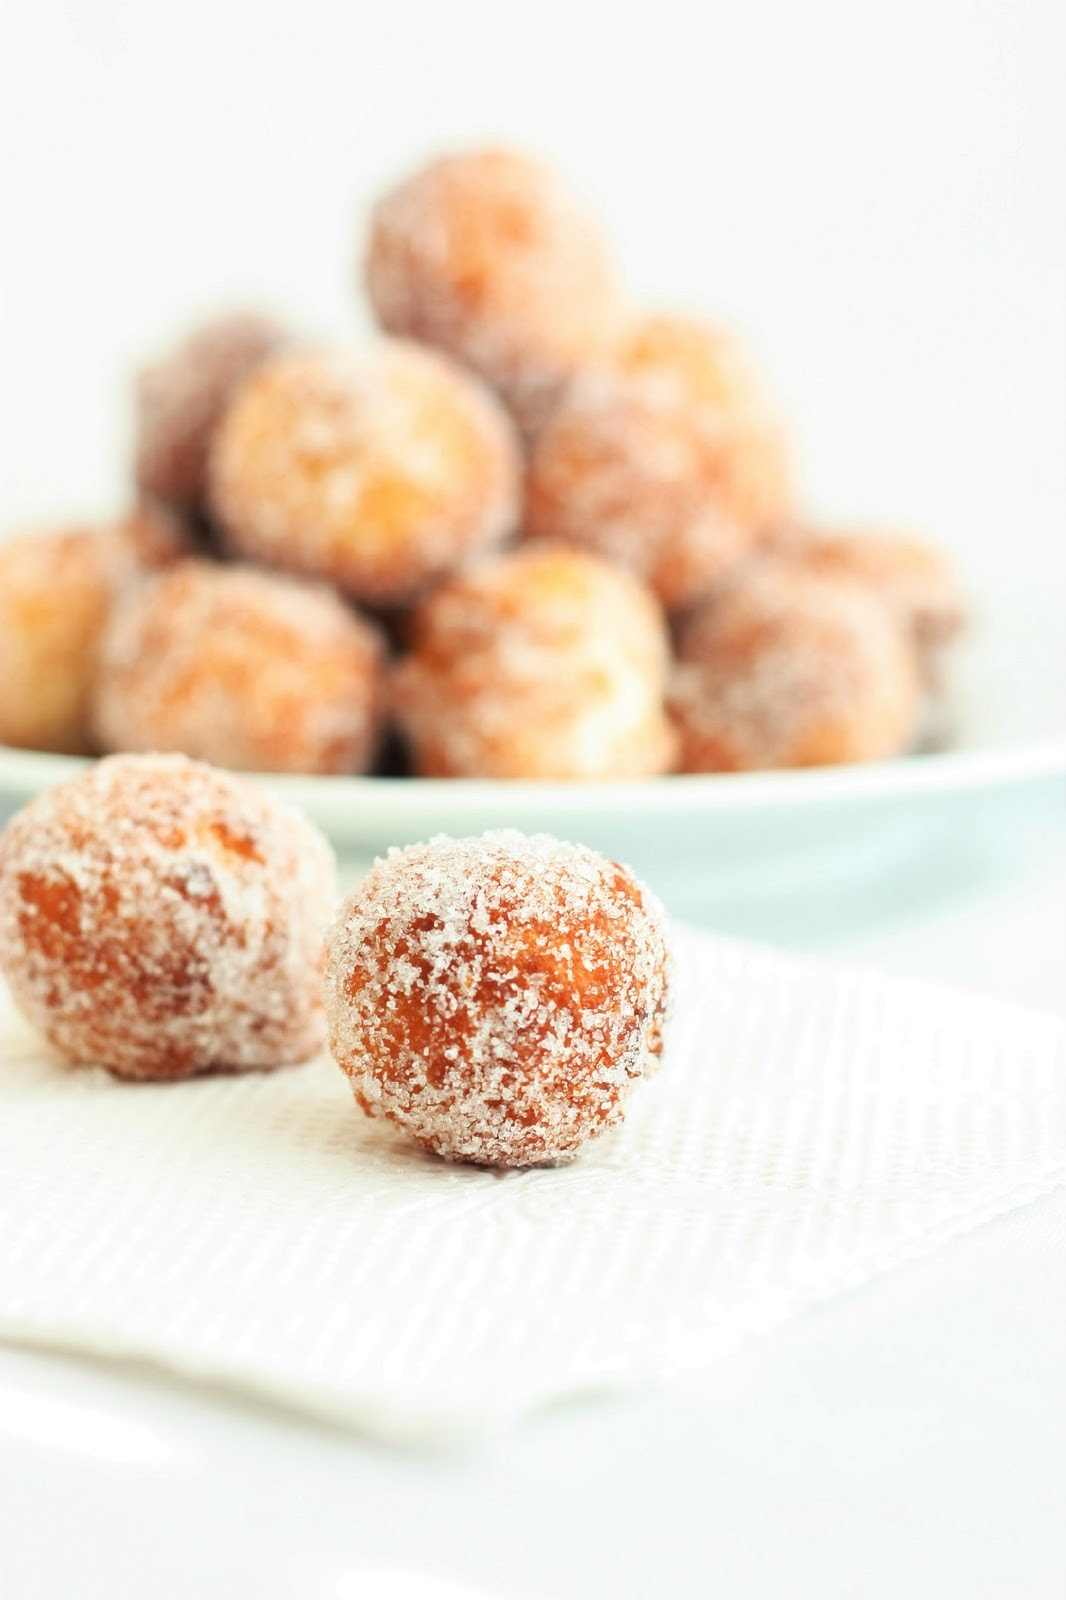 How to Make Homemade Donuts in 15